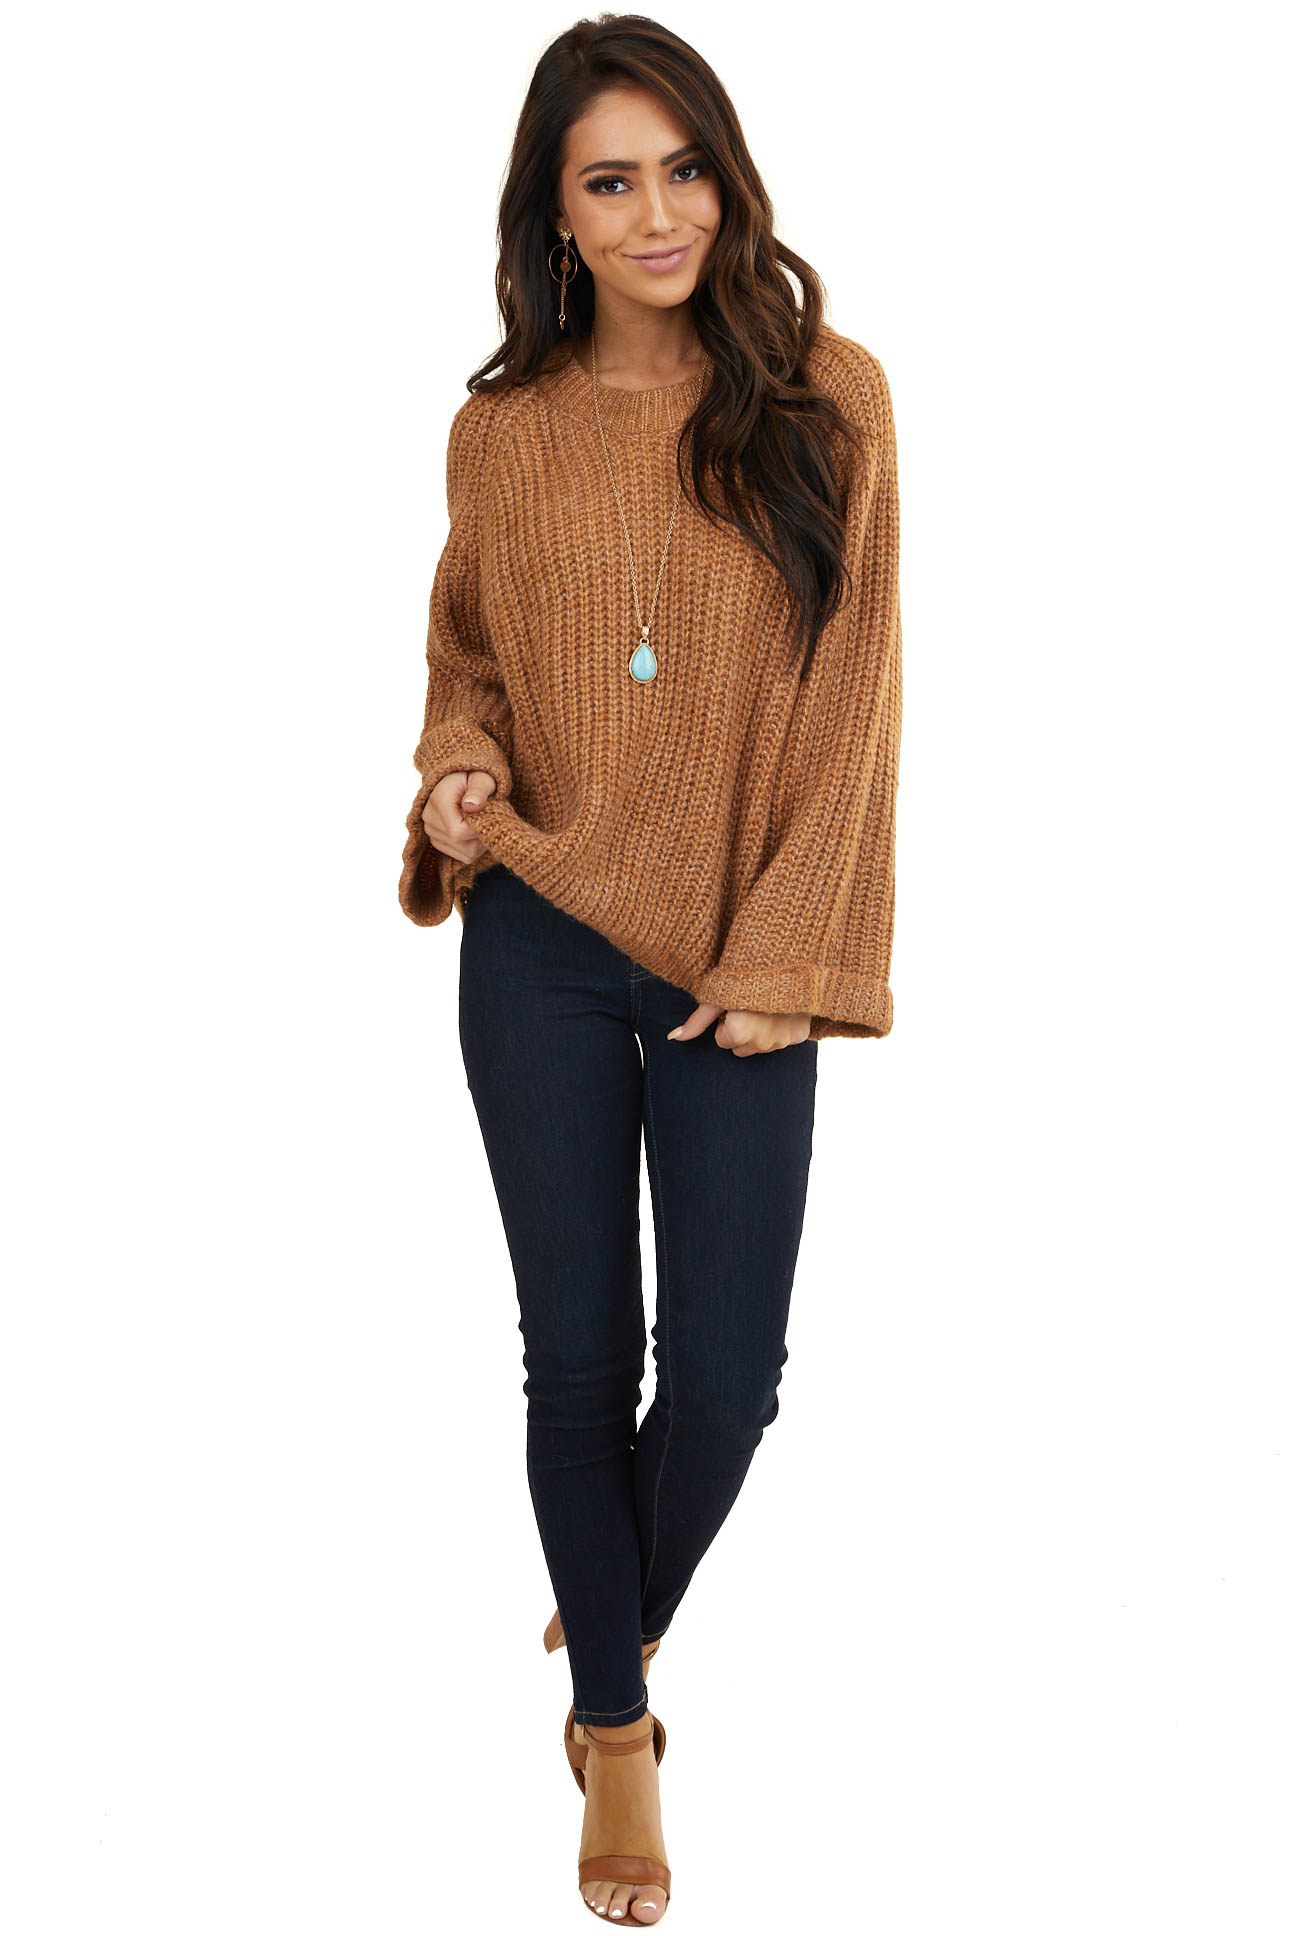 Caramel Oversized Sweater with Long Cuffed Flowy Sleeves v